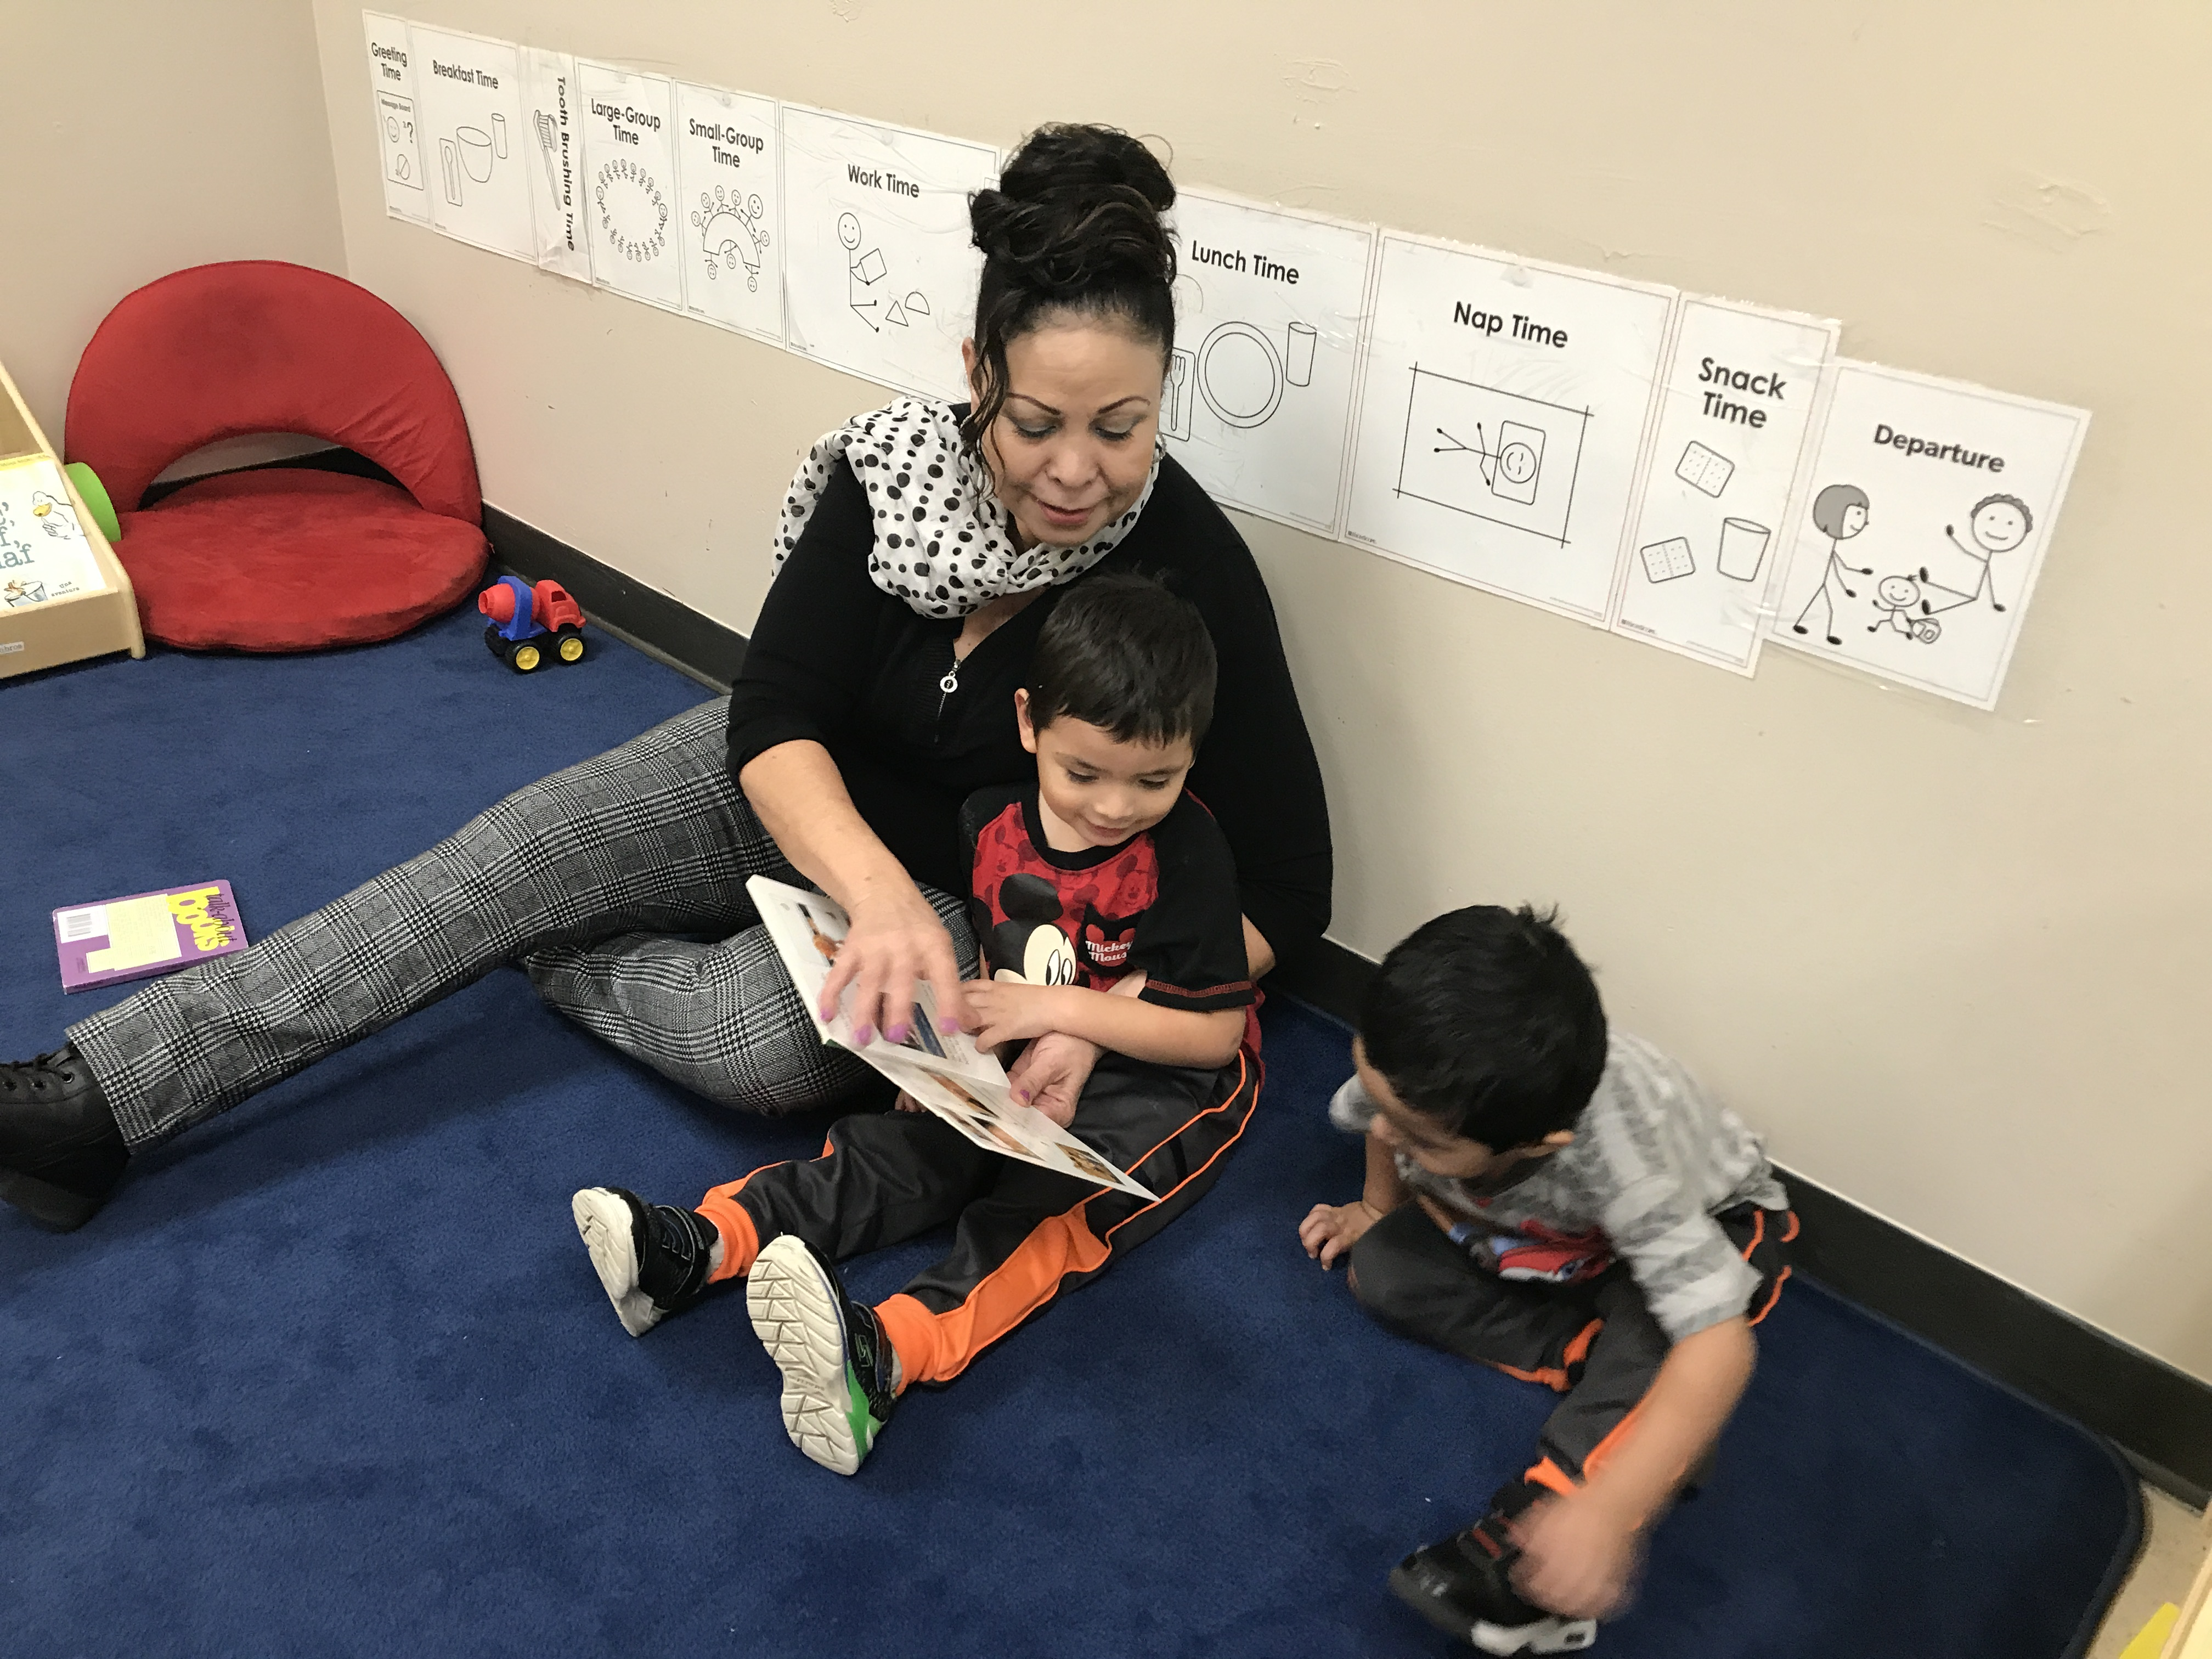 """Evangelina De La Fuente, worries that the Head Start her 3-year-old twin grandsons attend could close or change. """"The babies are secure and they're happy and they're well fed and they're well taken cared for. It's scary to think it could change,"""" she said."""